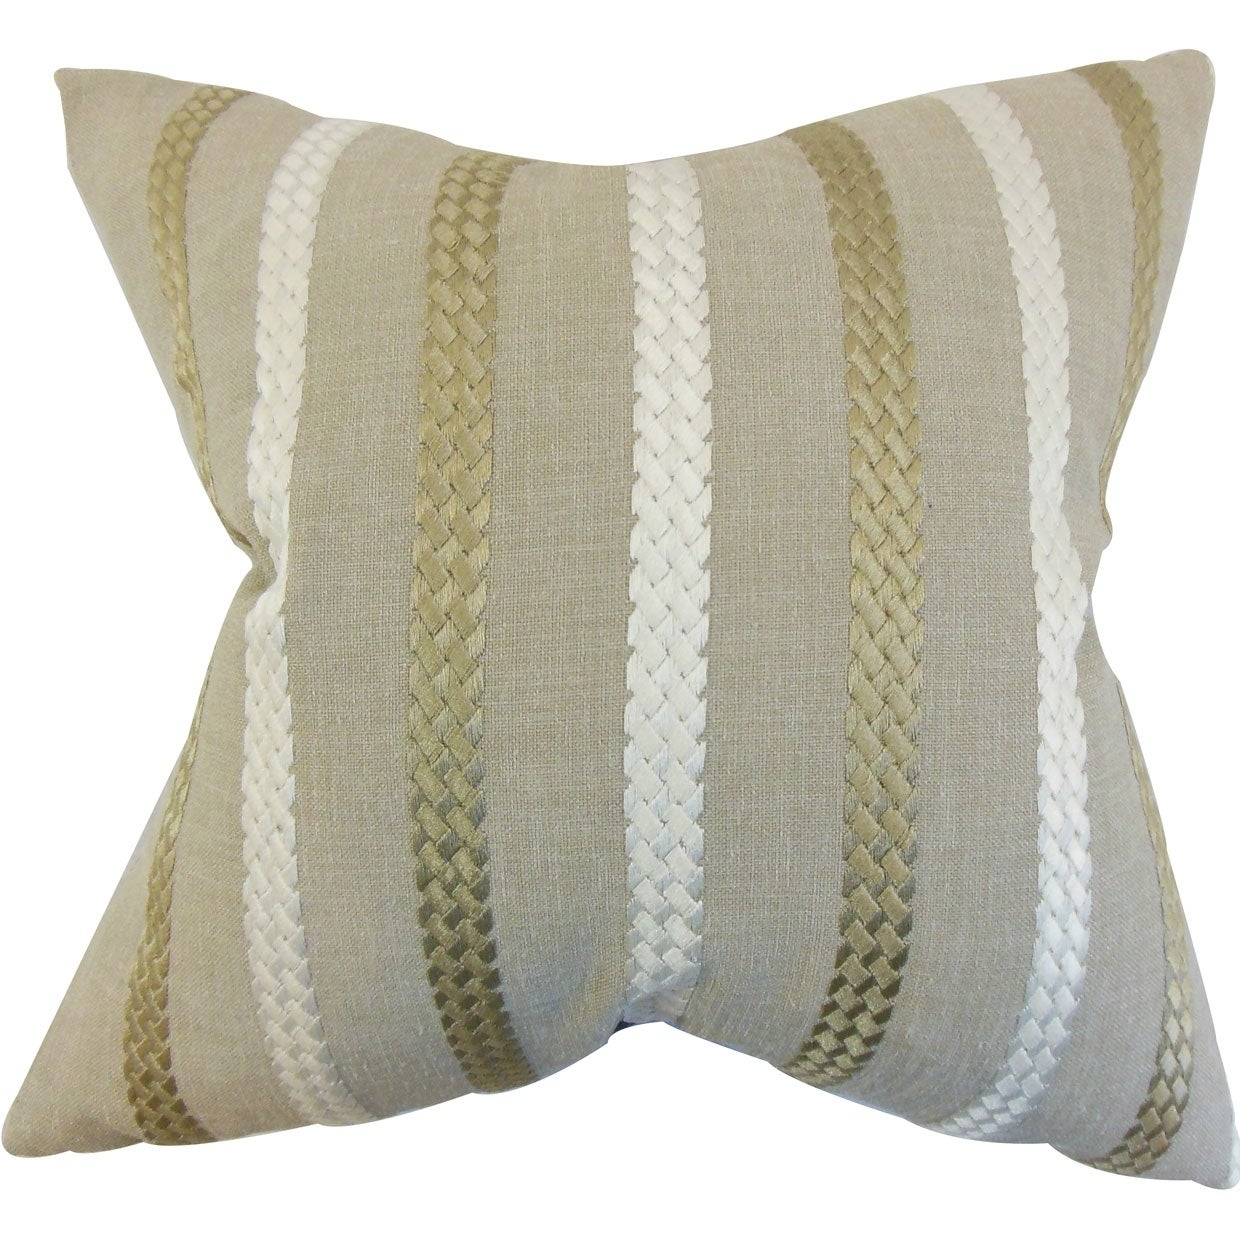 PILLOW COLLECTION INC Emese Stripe Burlap Down Filled Throw Pillow at Sears.com